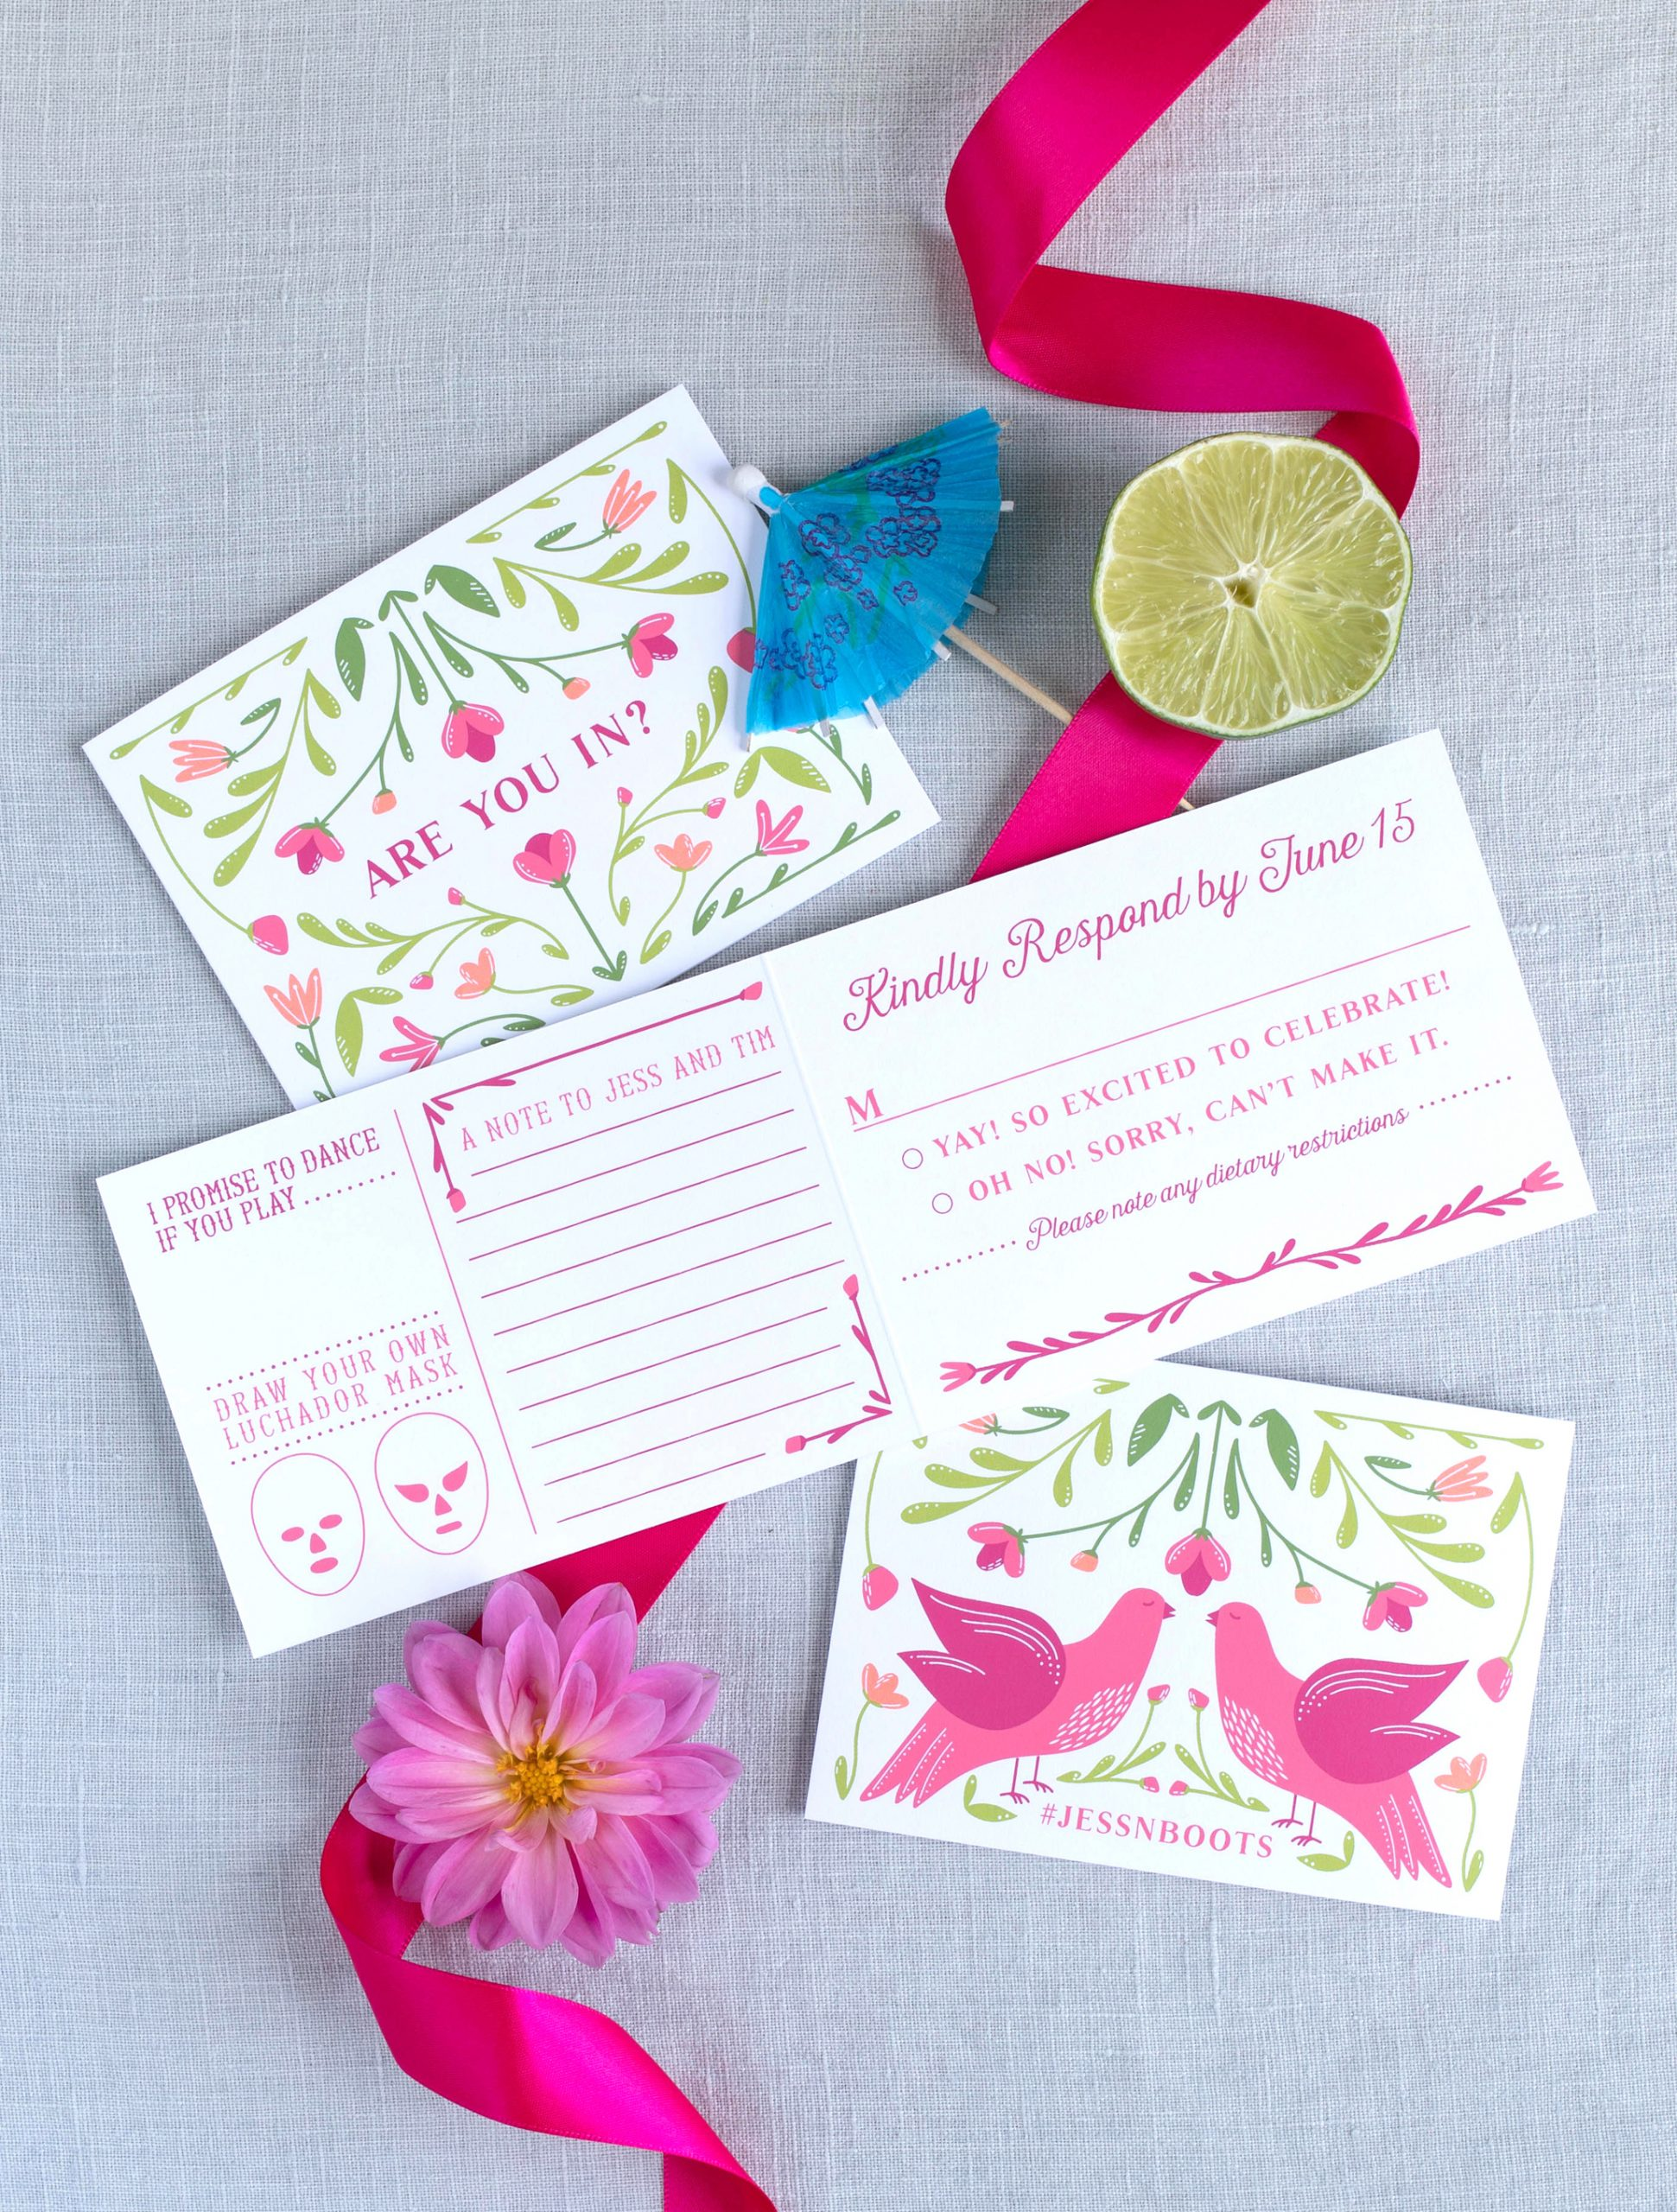 a fun modern tropical wedding invitations, with original illustration and original rsvp card,